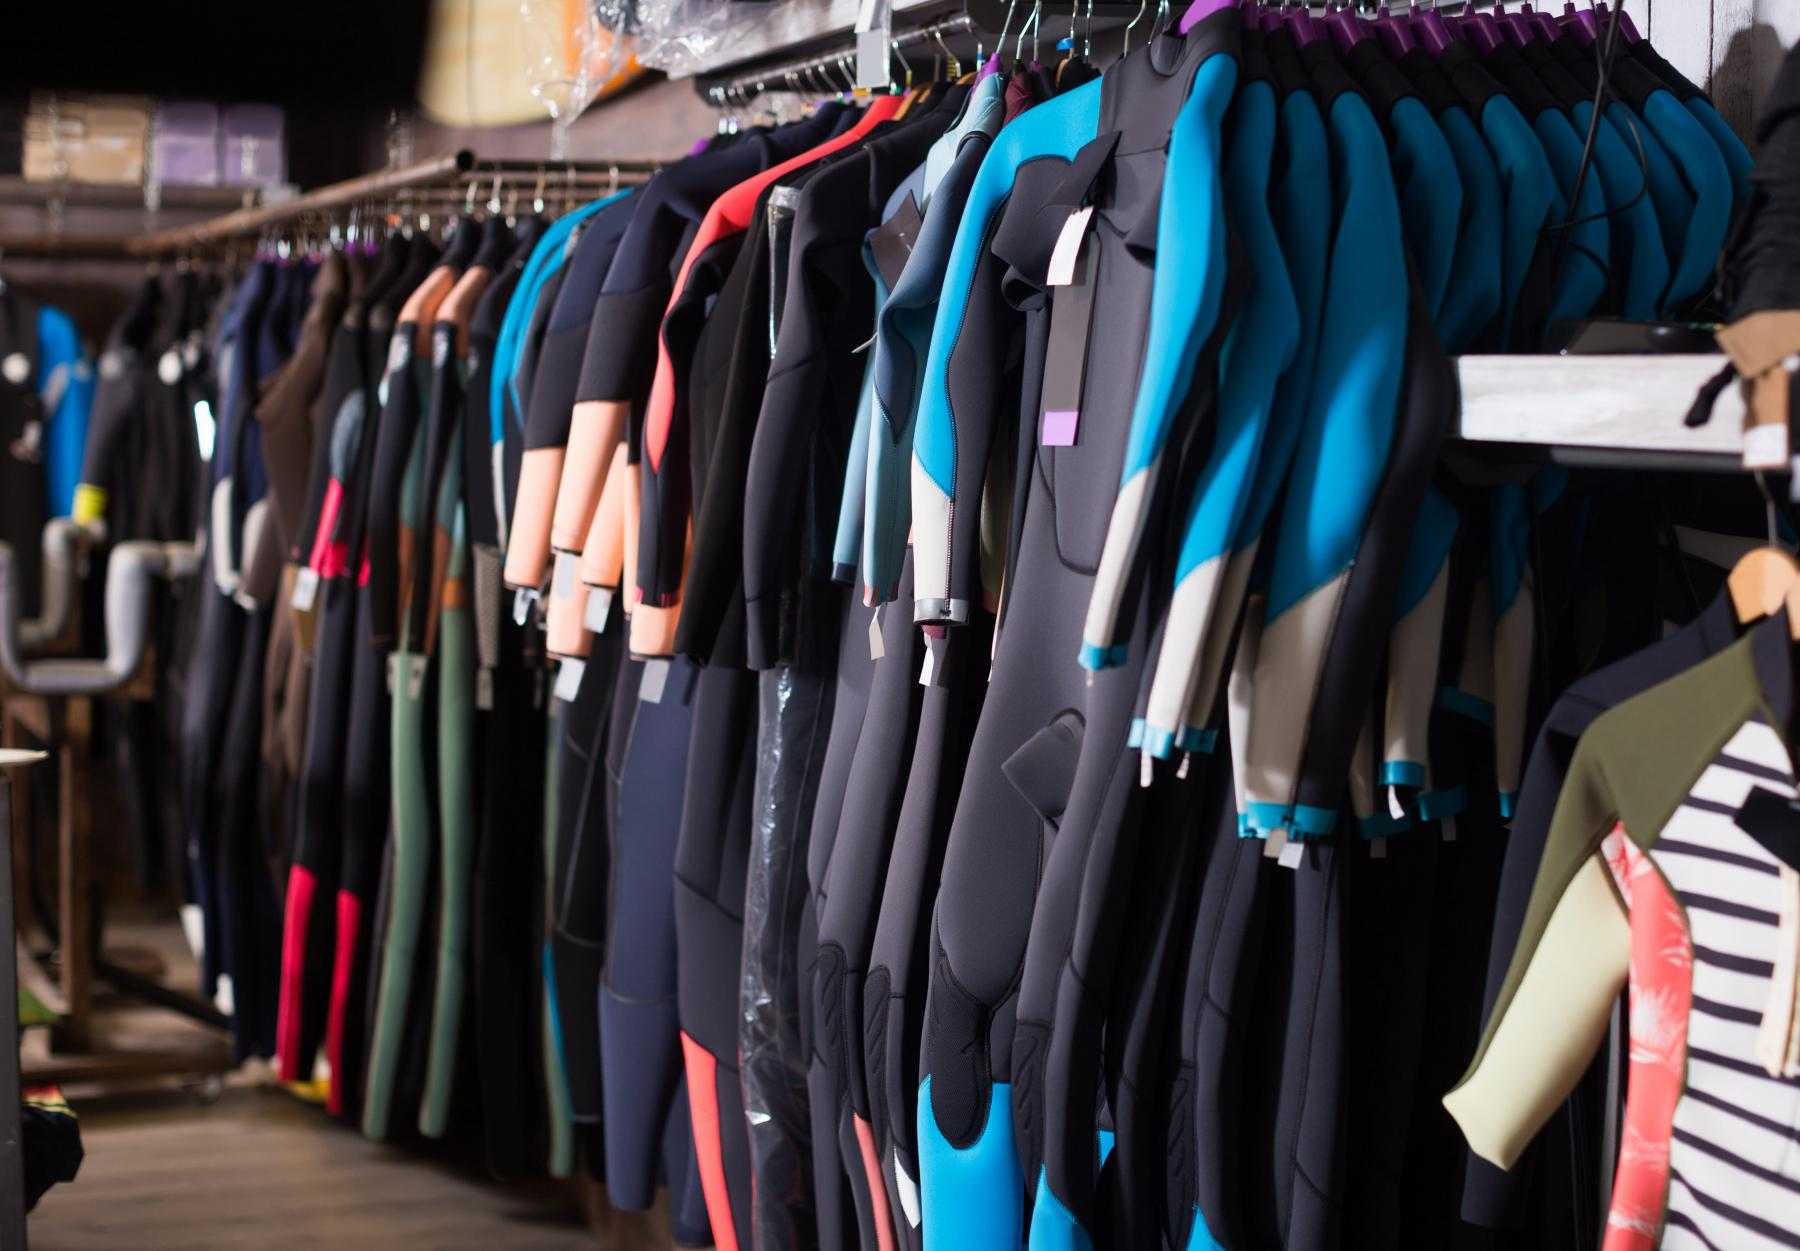 Different wetsuit sizes